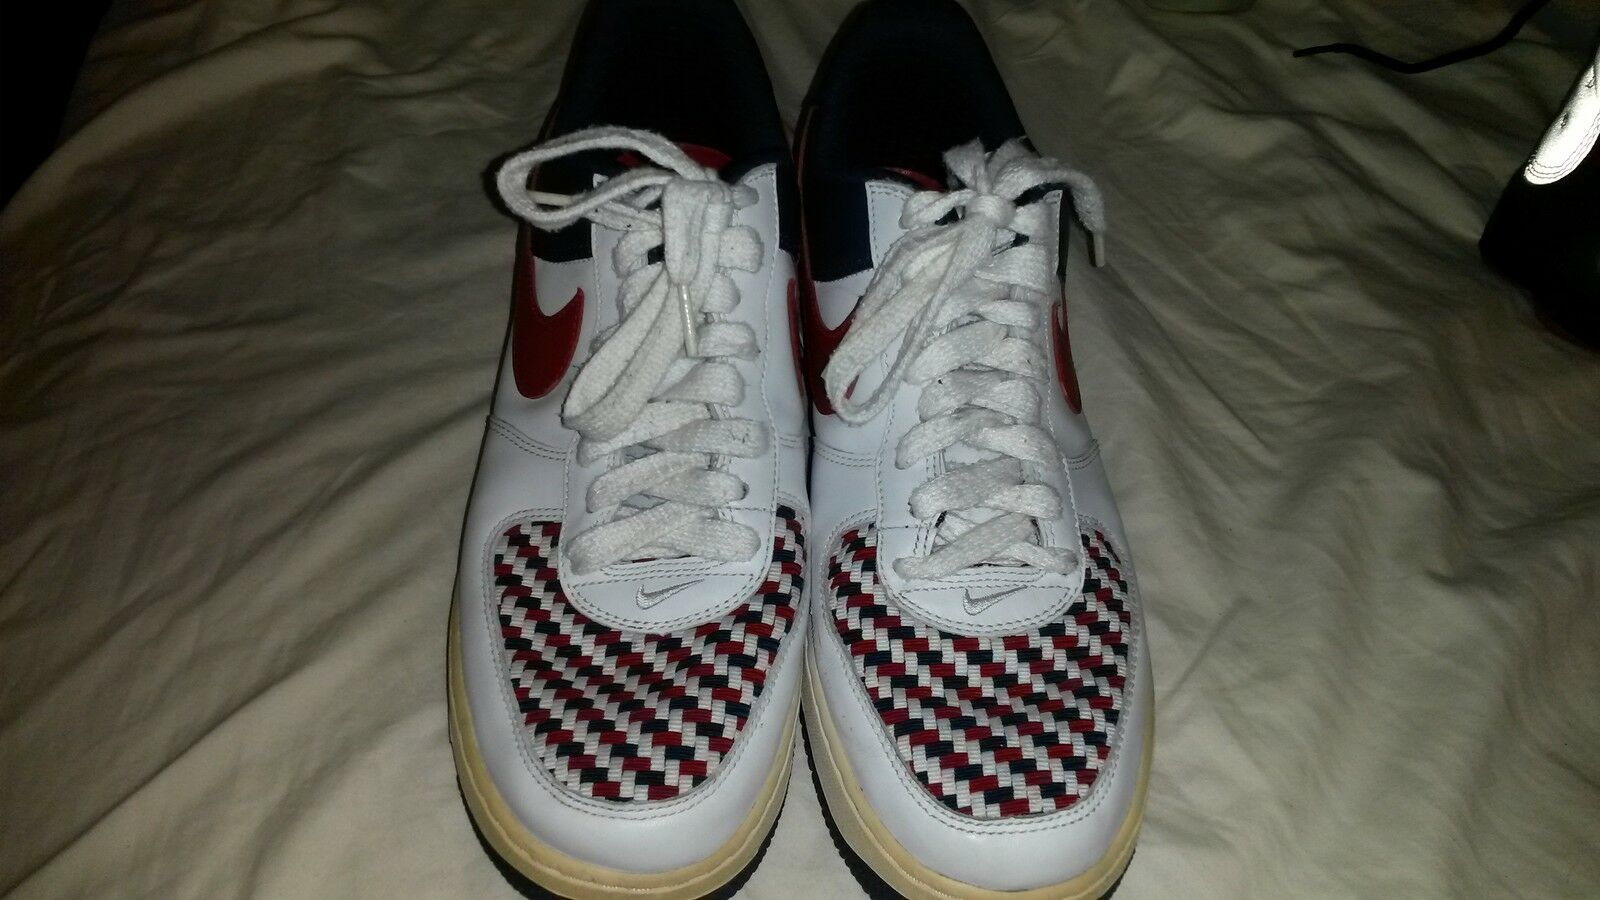 2005 Nike Air Force 1 Low Premium Armed Forces Limited Edition Shoes Size 10